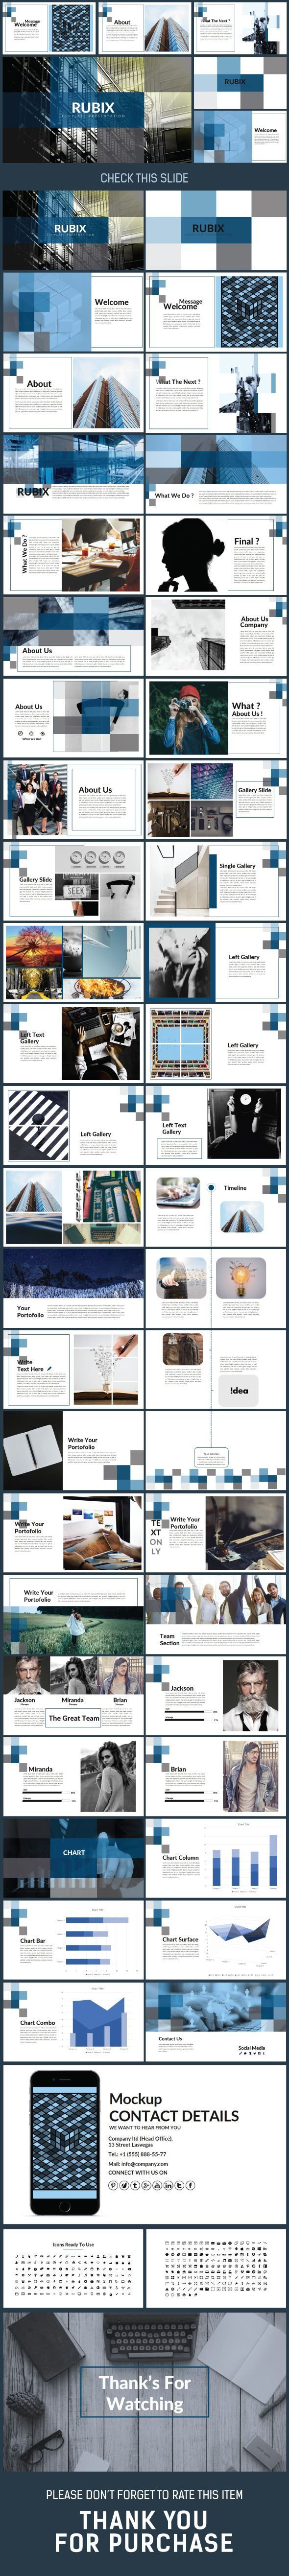 Business infographic : RUBIX Presentation Power Point Template Creative PowerPoint Templates